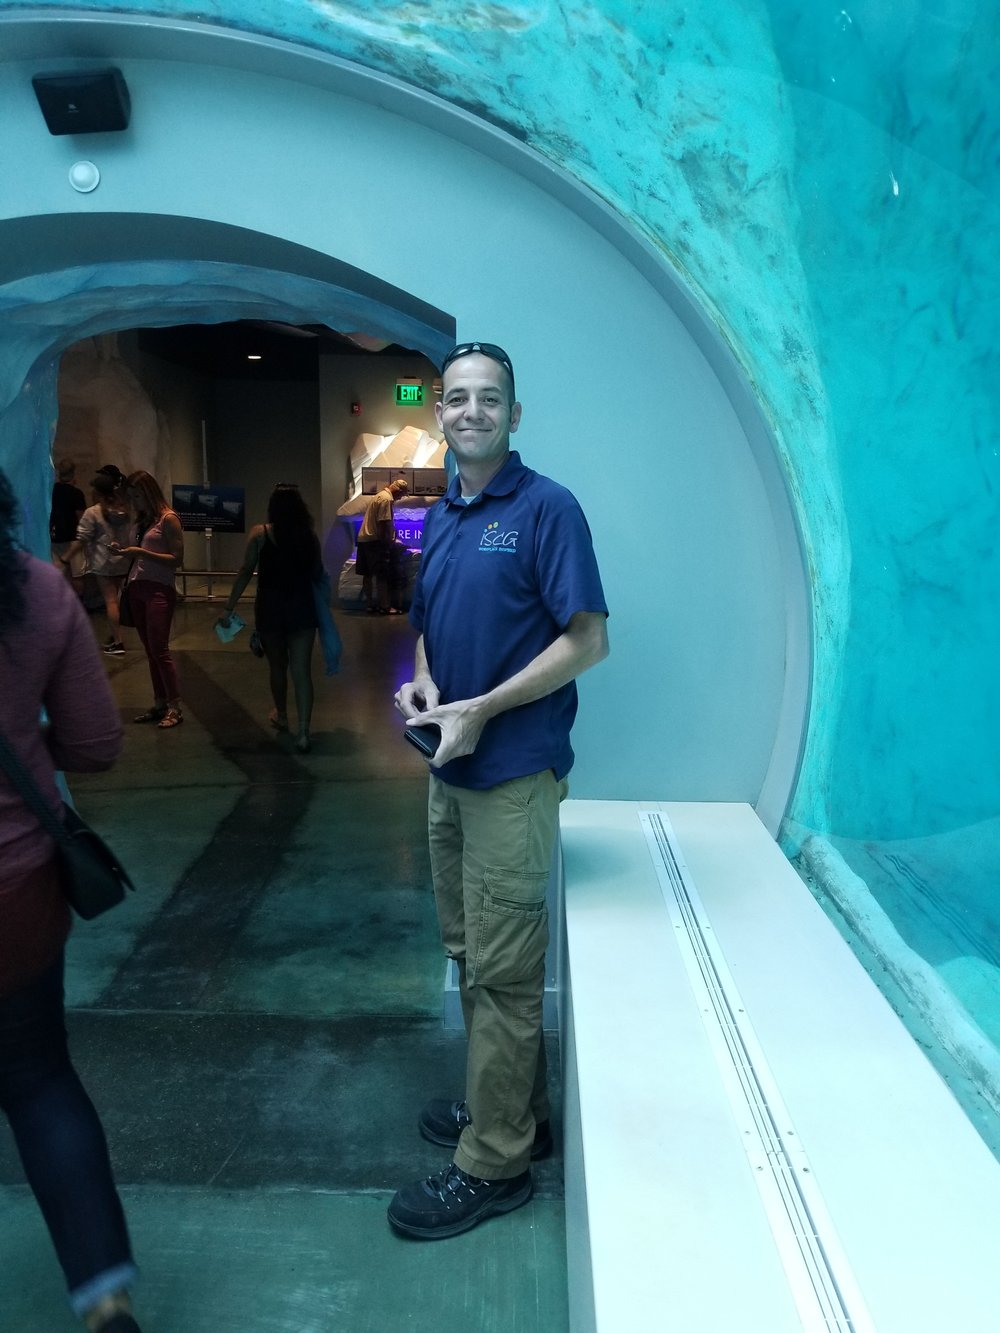 Project Manager Bill enjoying the Penguin exhibit.